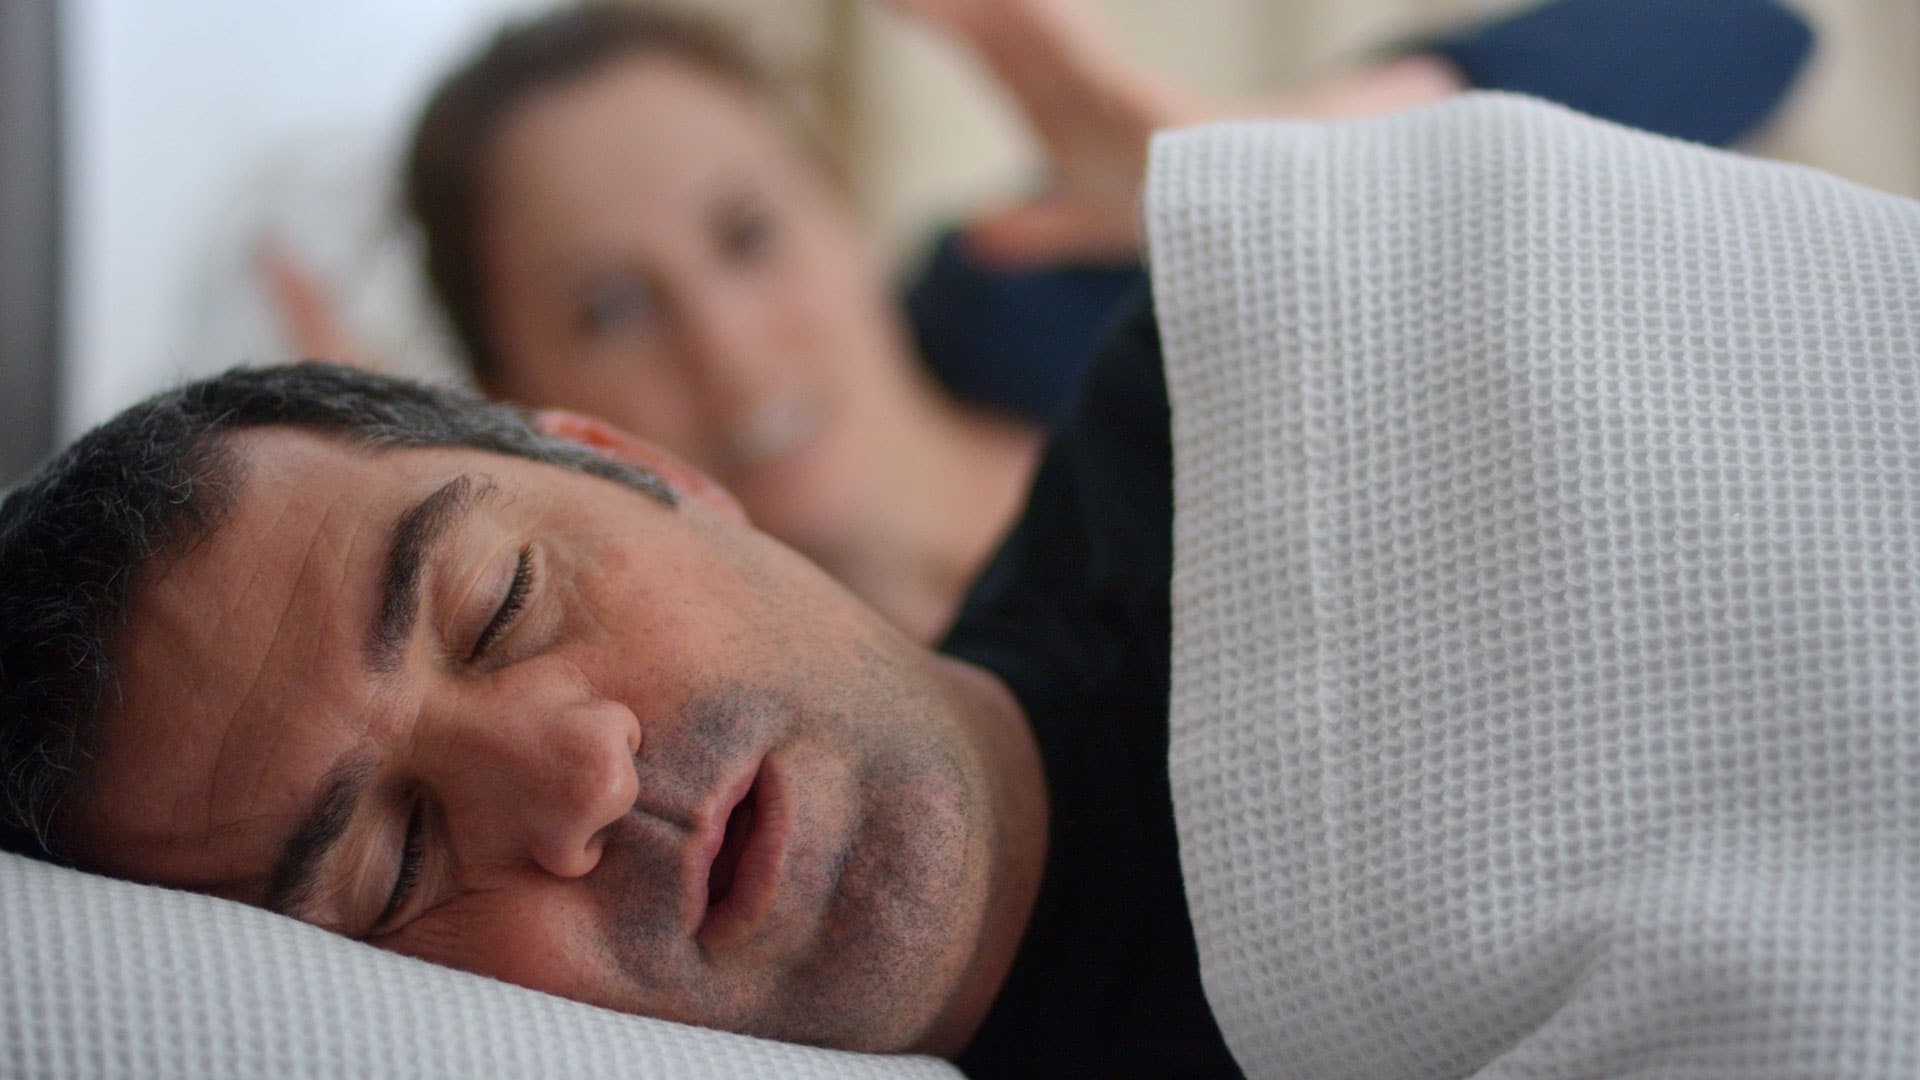 Man laying on his side snores while his wife looks on in anger